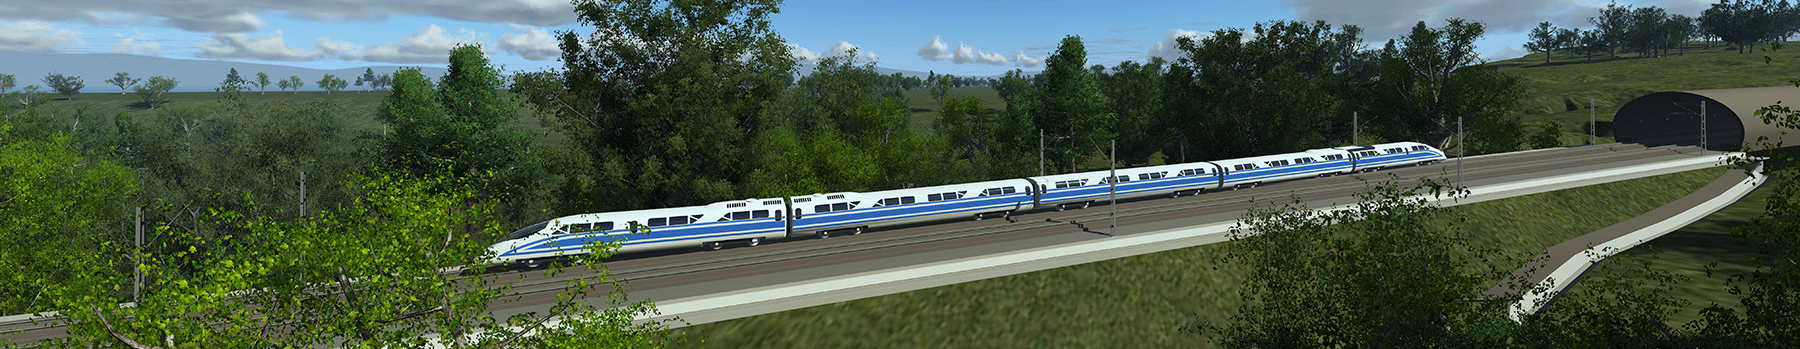 OpenRail Designer -Rail Track and Electrification Design and Analysis Software